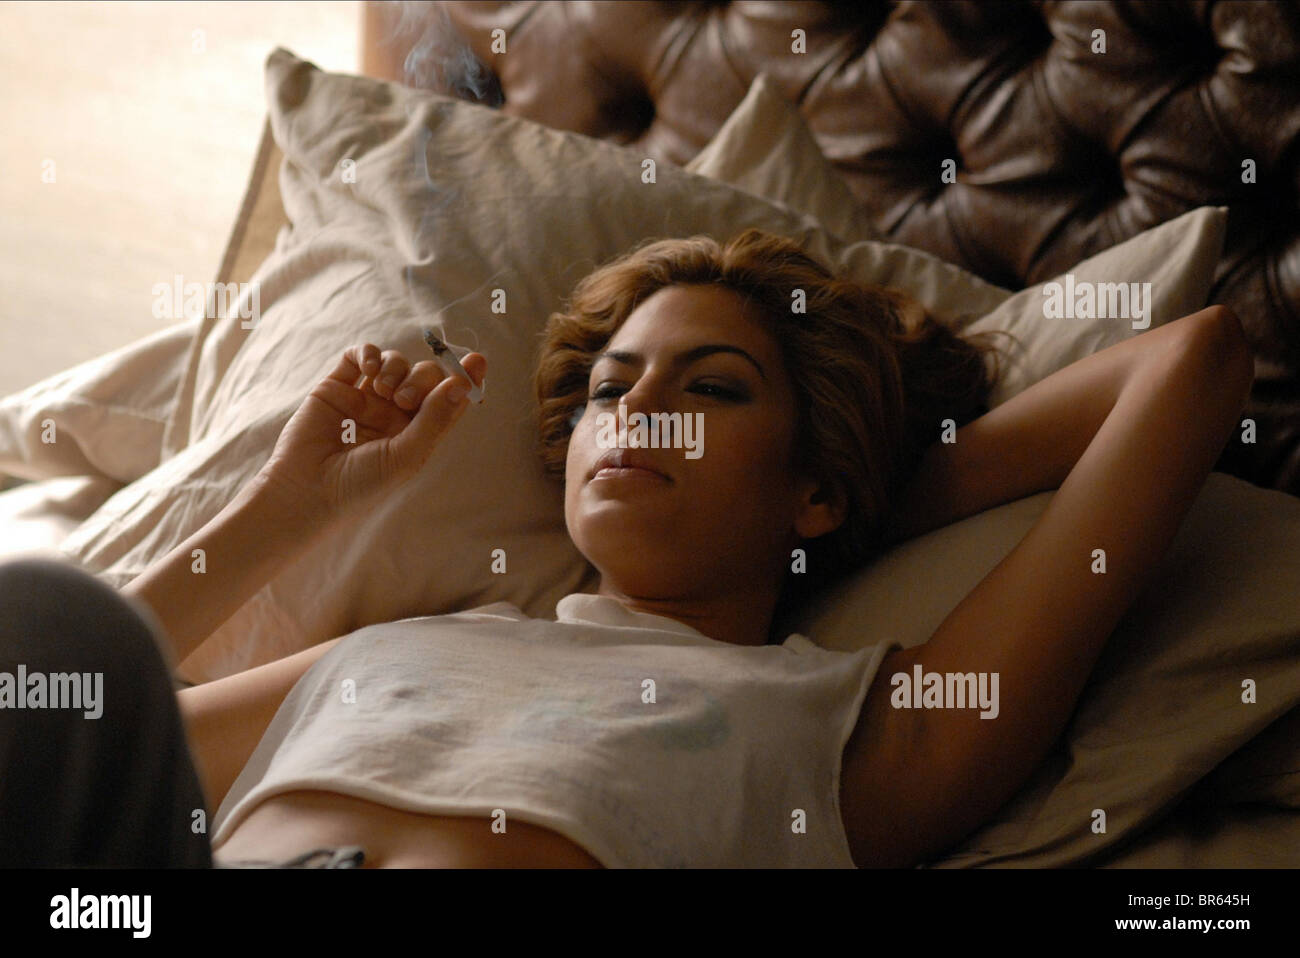 Eva Mendes Sex We Own The Night 15